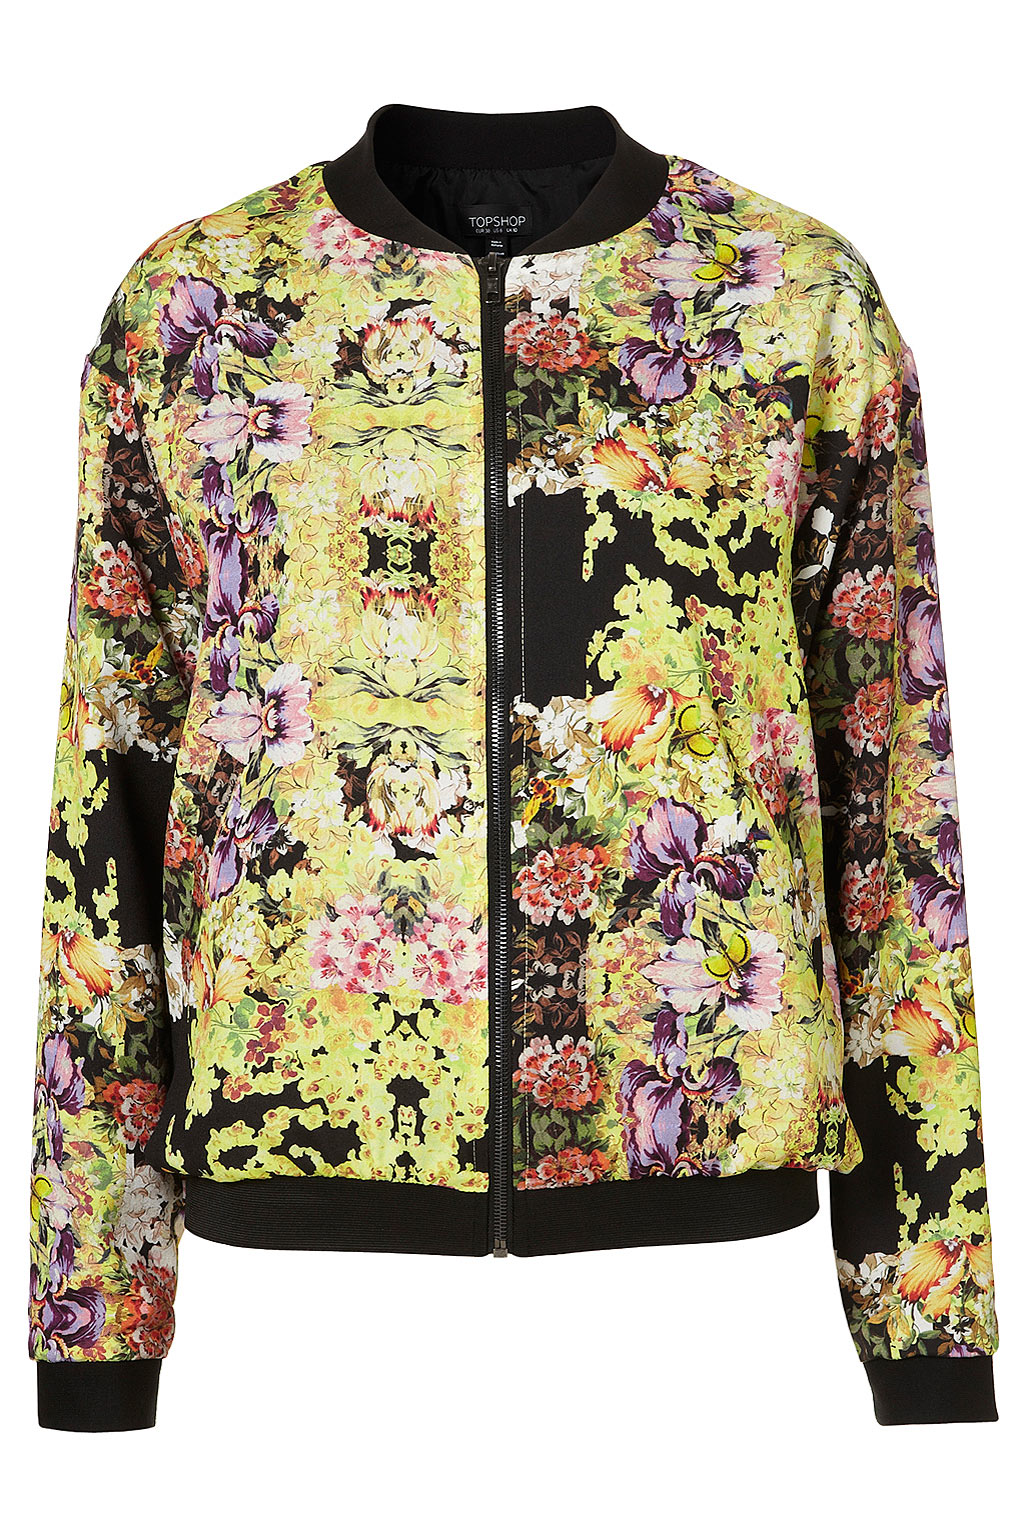 We love bringing you distinctive pieces for your active lifestyle, and you'll love this bomber jacket with colorful embroidery on the front and sleeves, an exposed front zip.